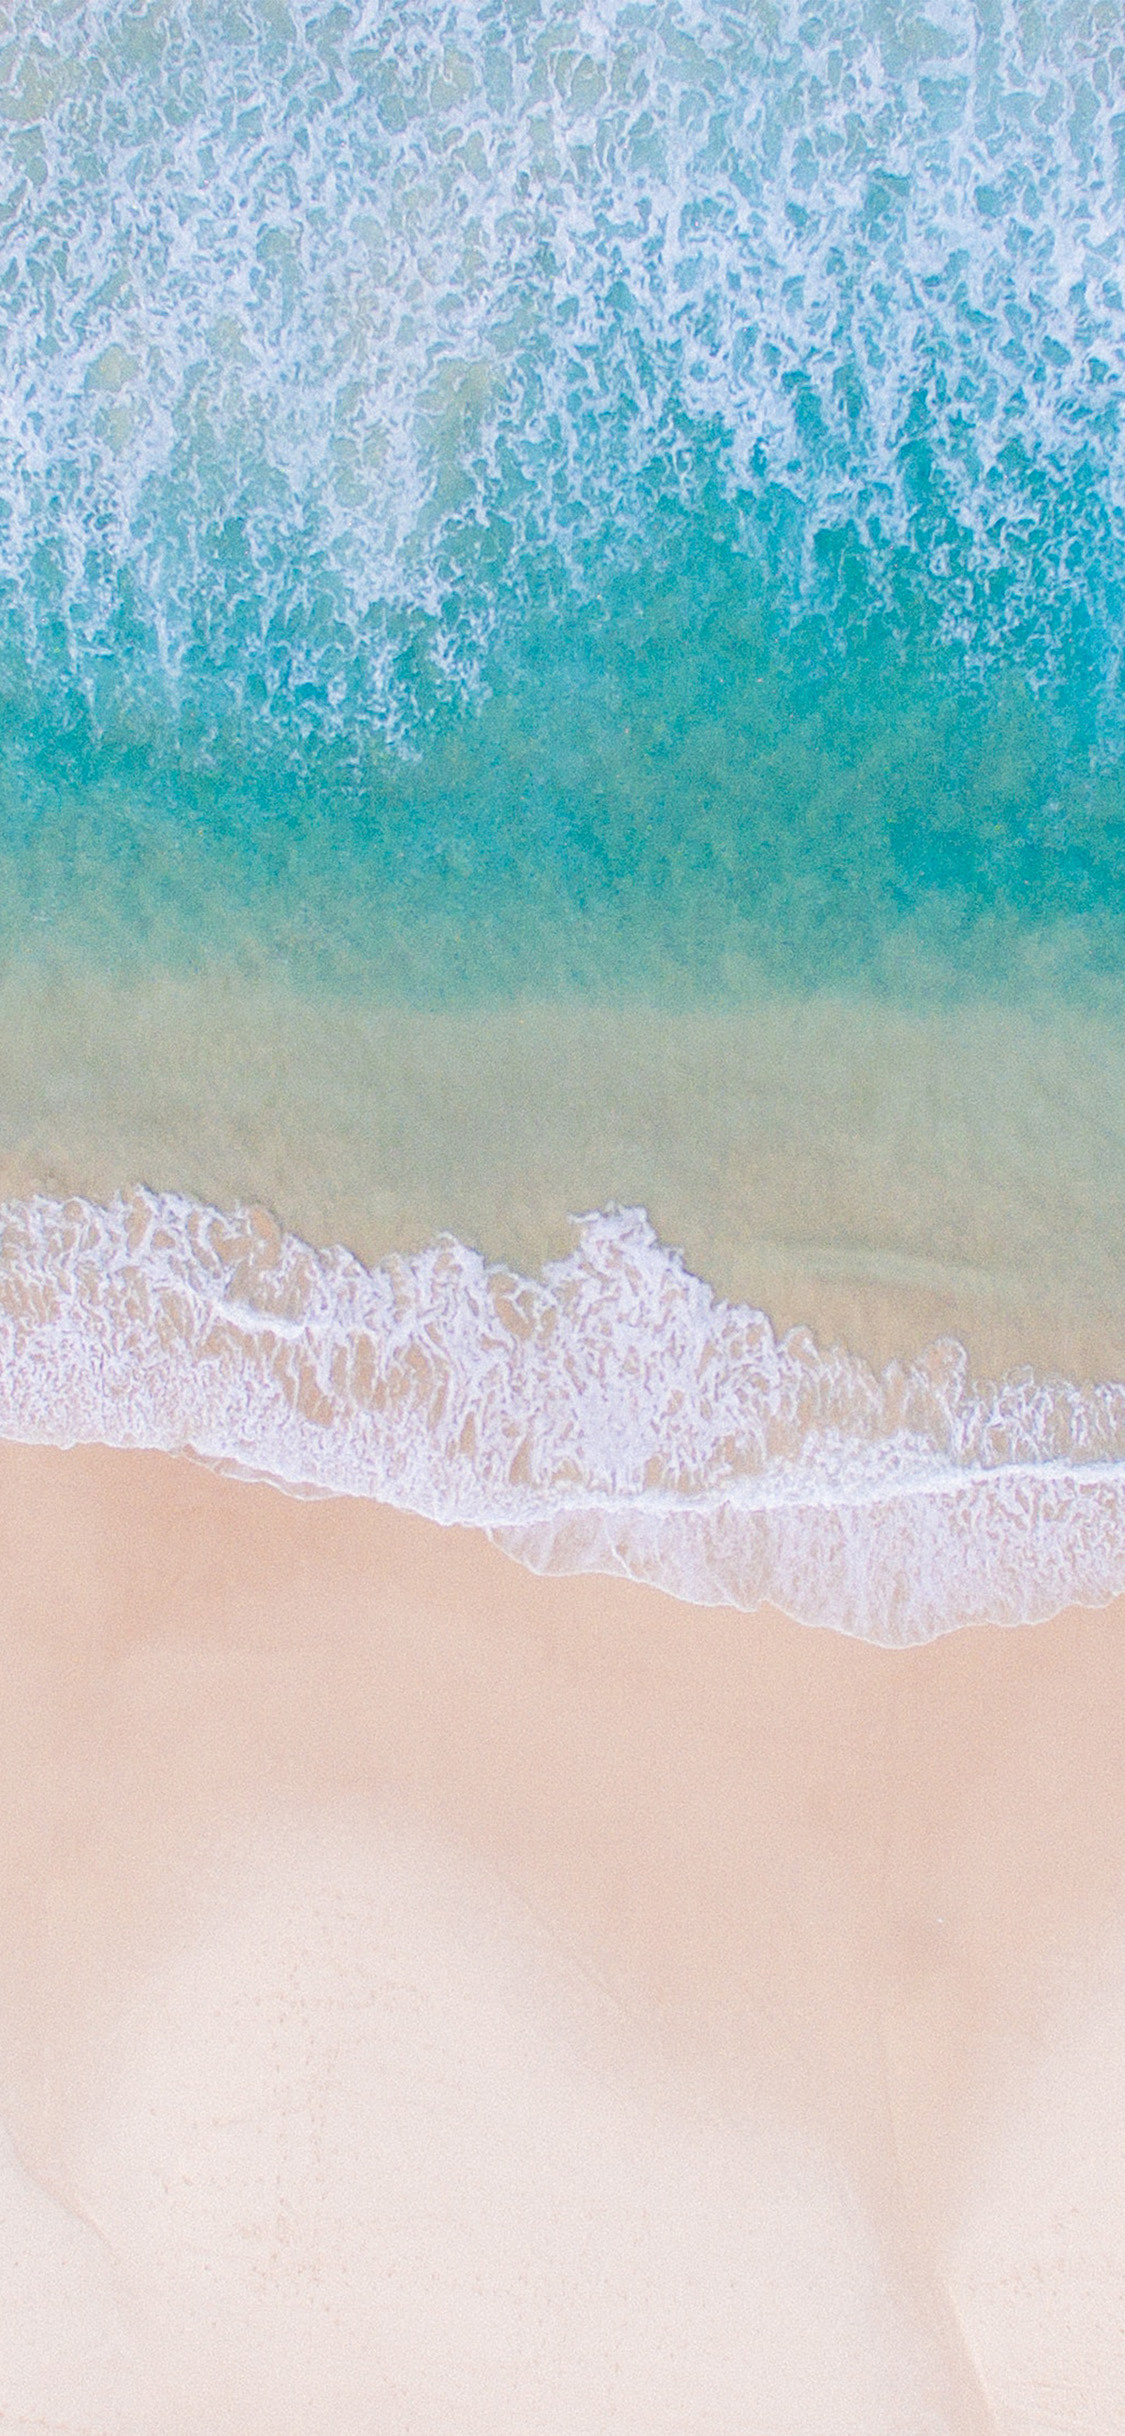 iPhonexpapers.com-Apple-iPhone-wallpaper-nv20-sea-beach-water-summer-nature-earth